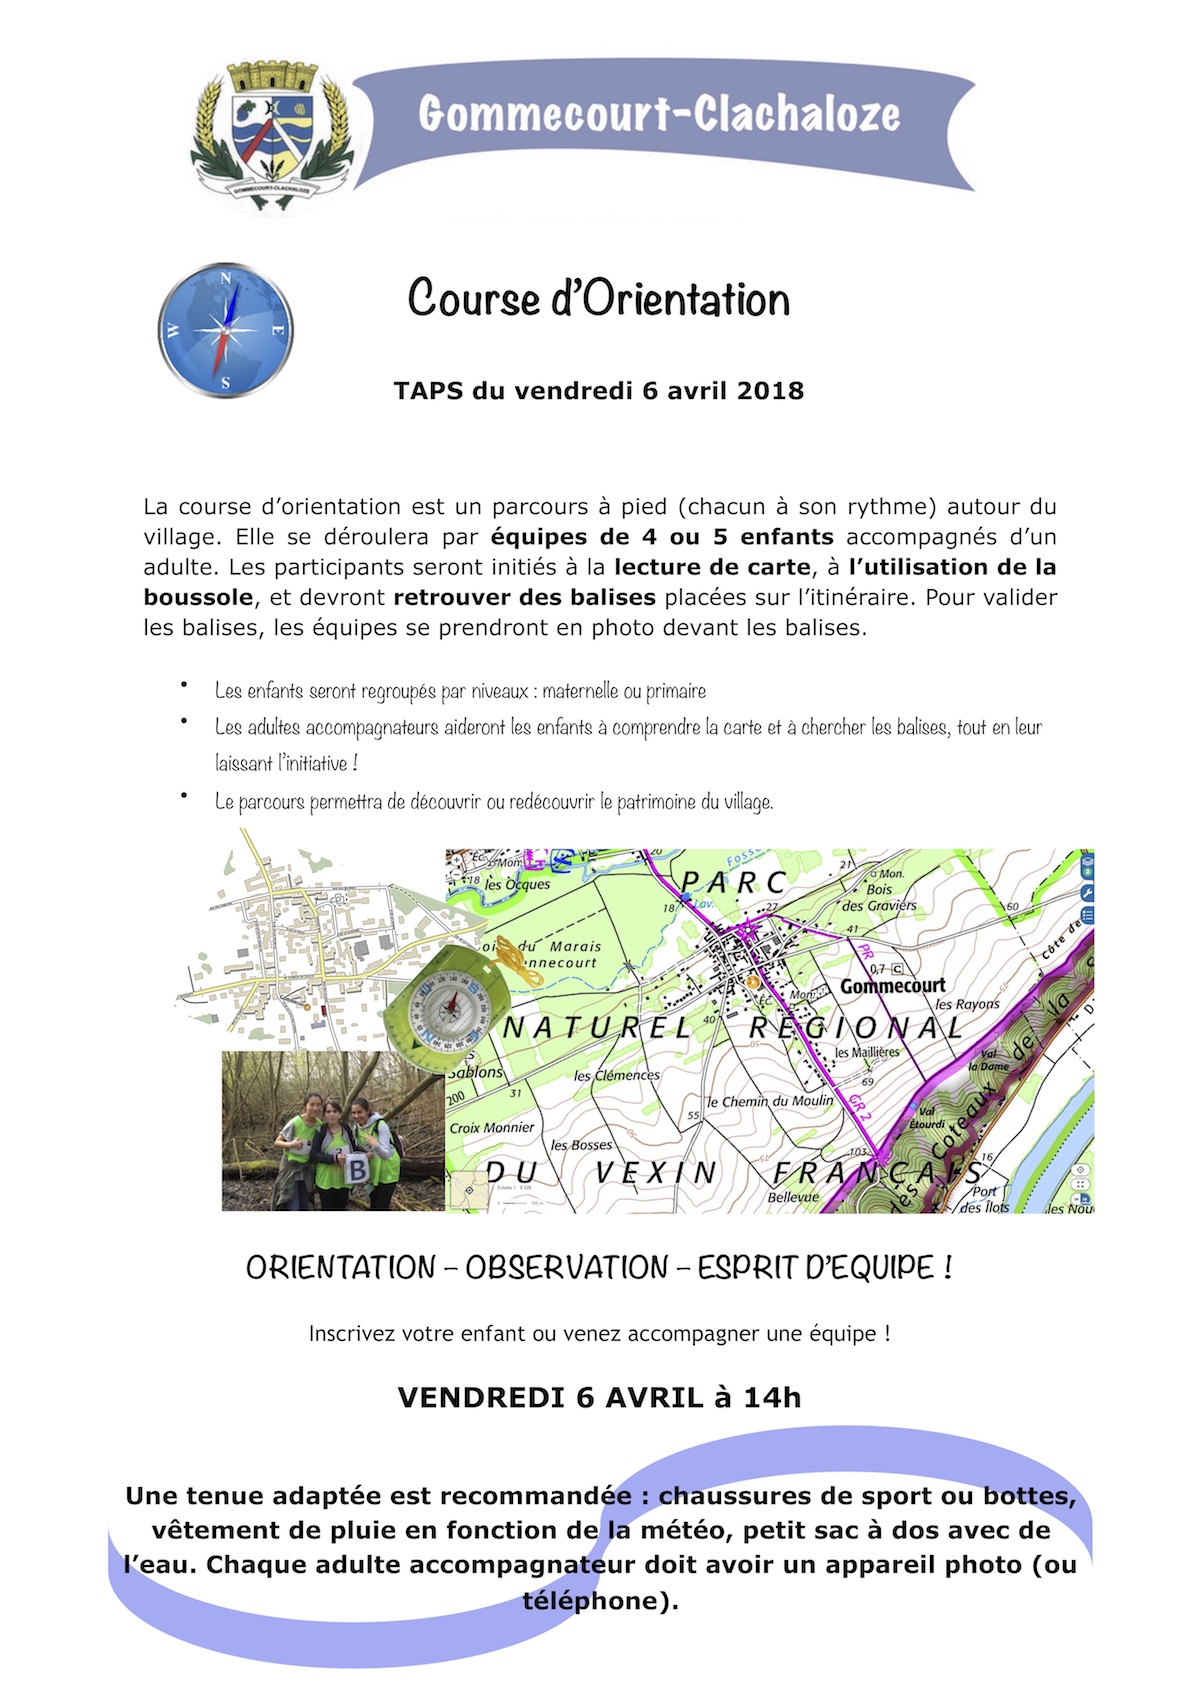 TAPS 6 avril Course d'Orientation